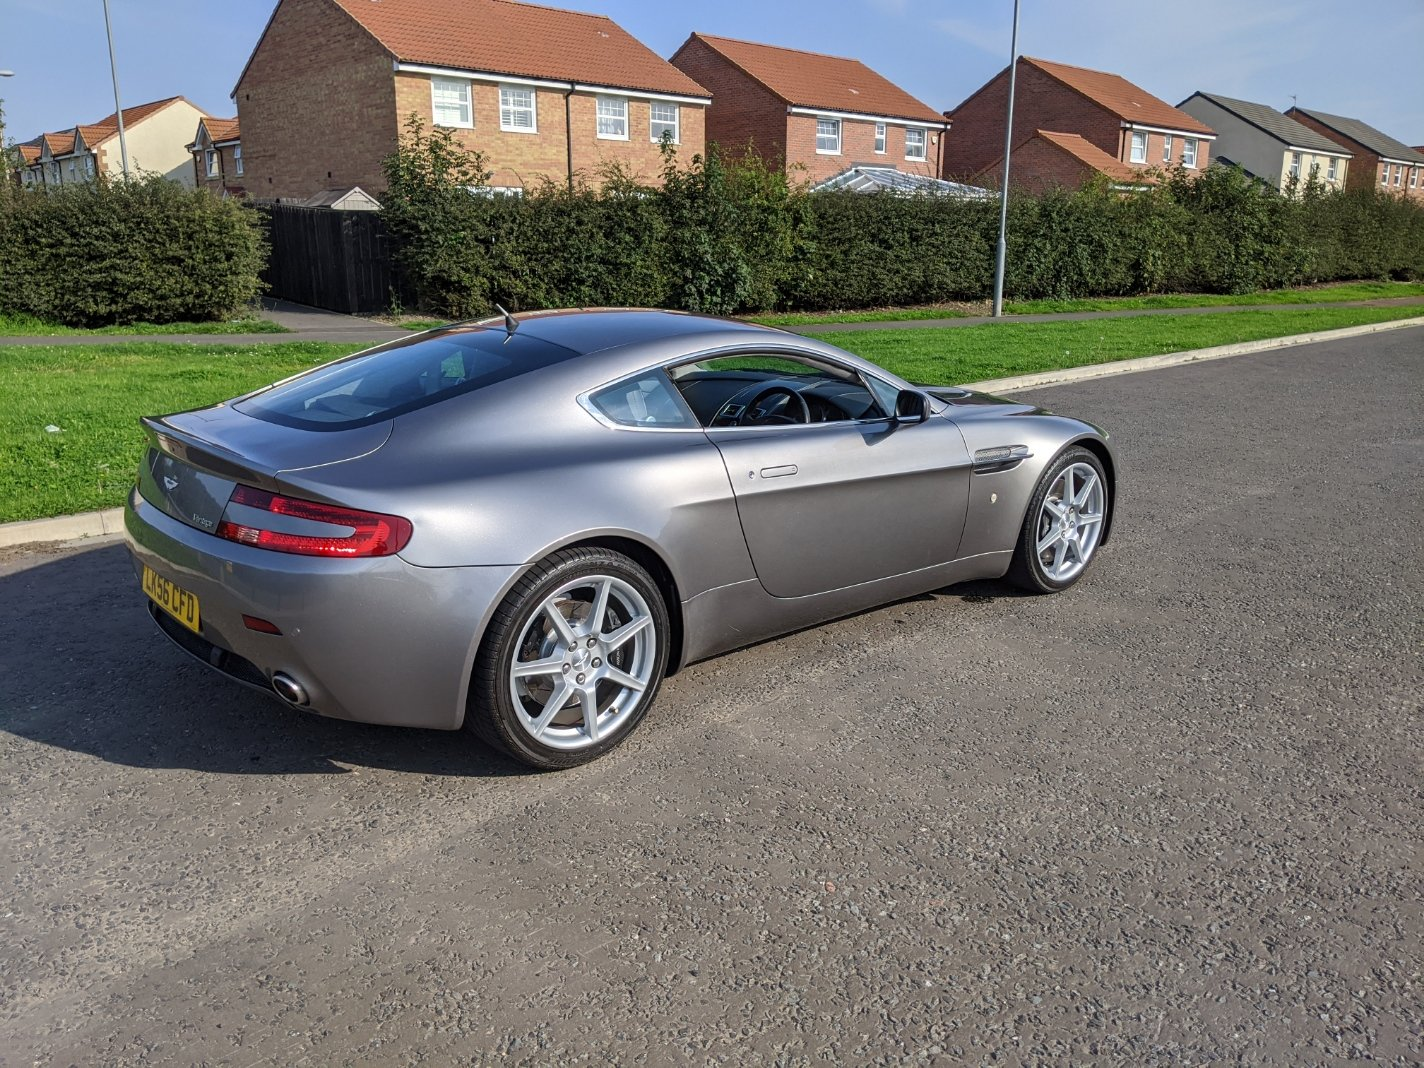 2006 Aston Martin Vantage V8 - Full AM Service History For Sale (picture 4 of 6)